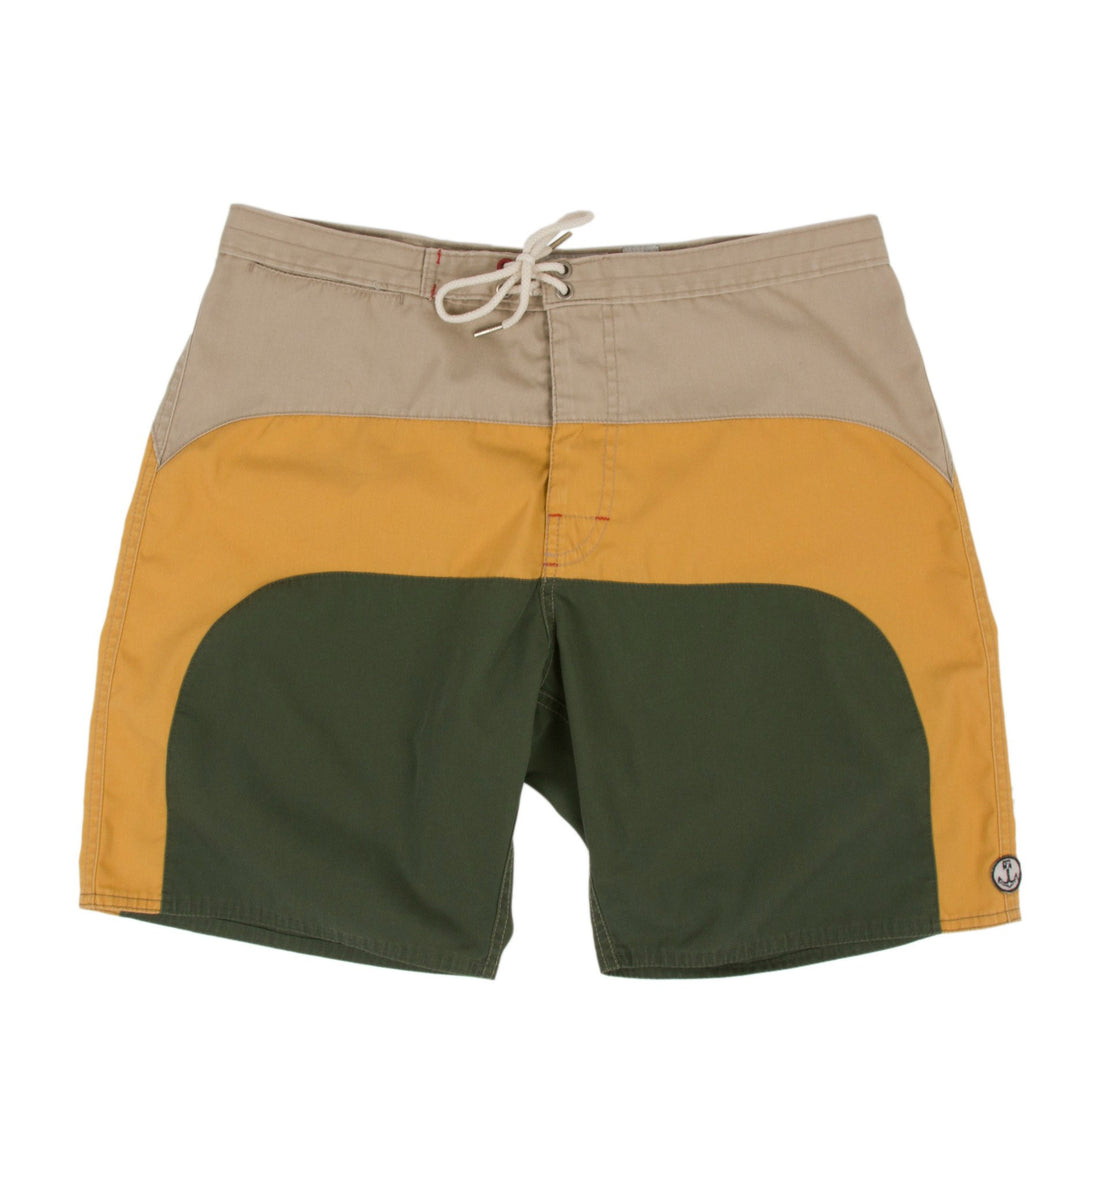 Challenger Boardshort - Apparel: Men's: Swimwear - Iron and Resin